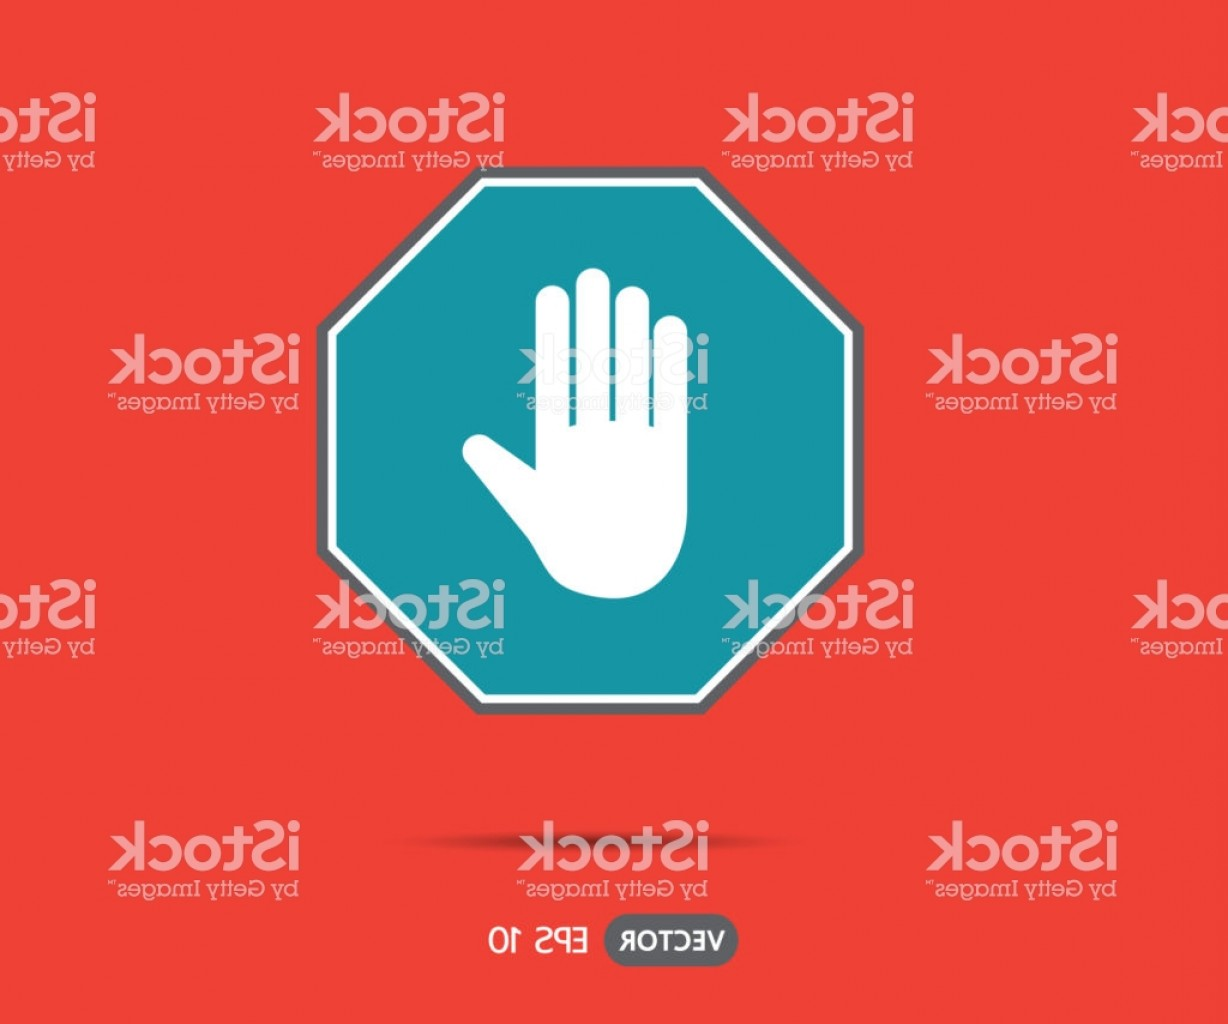 Hand Stop Vector Teal: Stop Hand Octagonal Sign For Prohibited Activities Logo Vector Illustration Gm